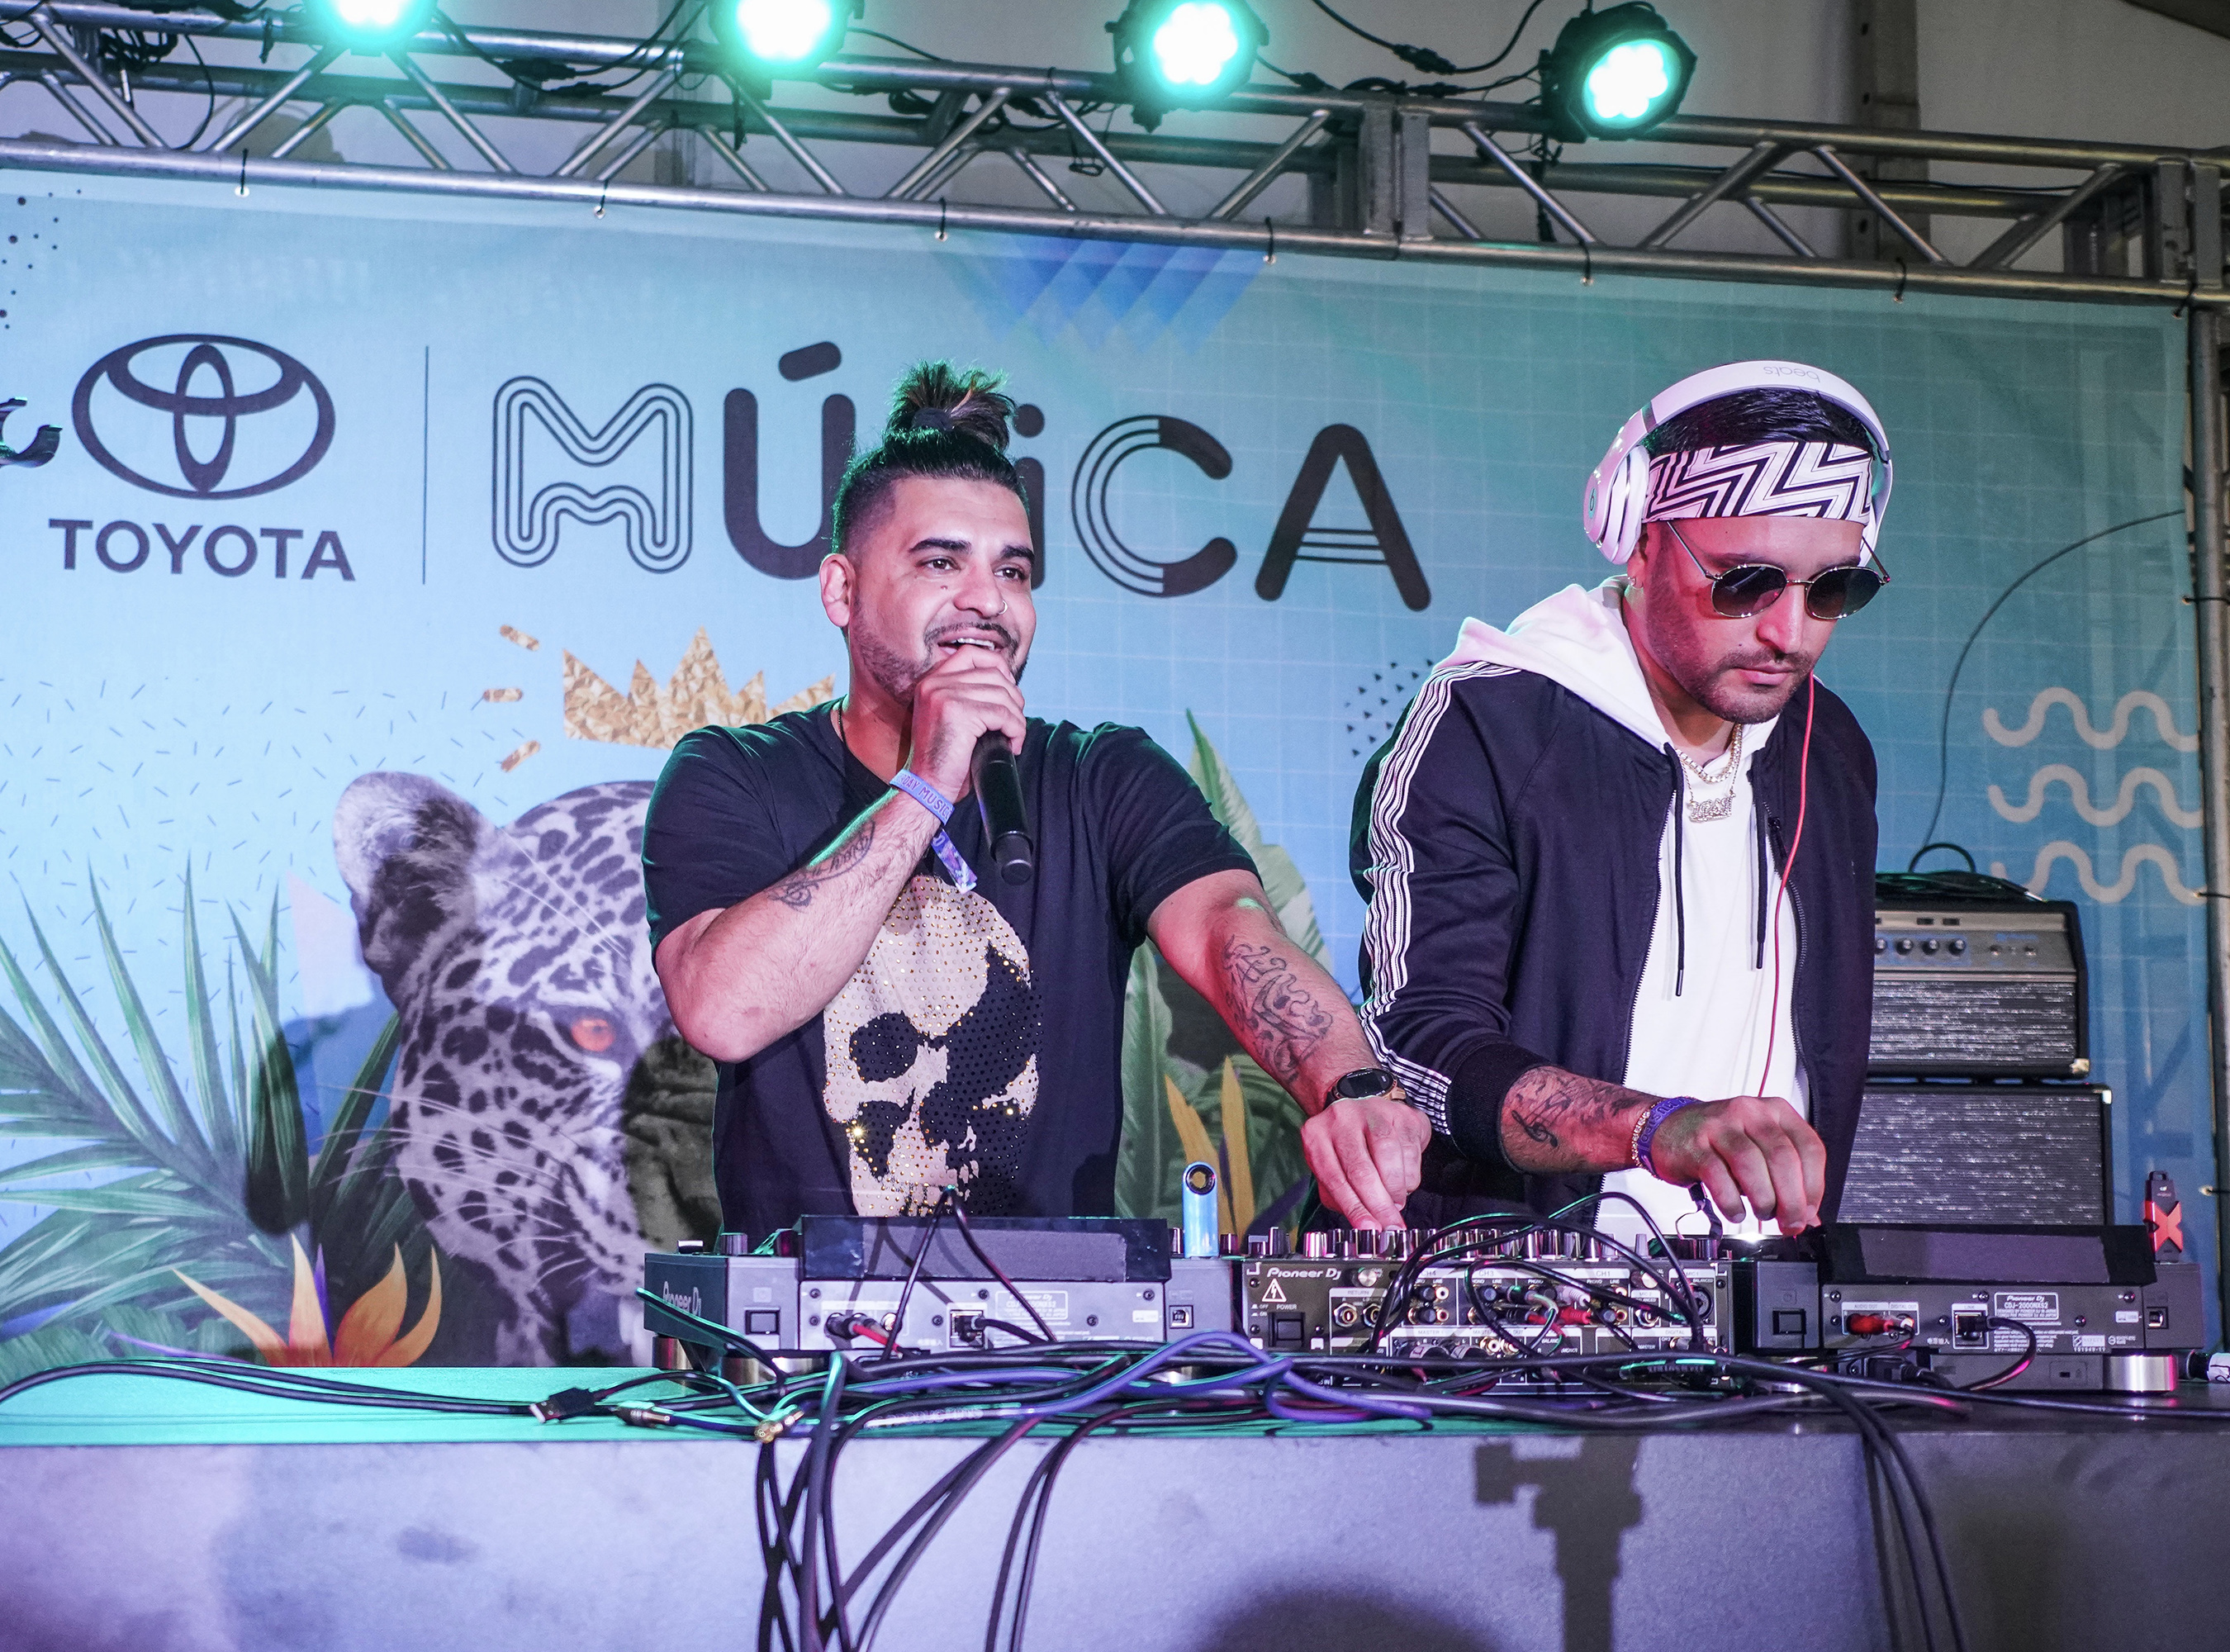 Two-time Grammy award winning producers, writers and DJs, Play-N-Skillz had the crowd dancing during their performance on the Toyota Music Den stage at Ruido Fest 2018.